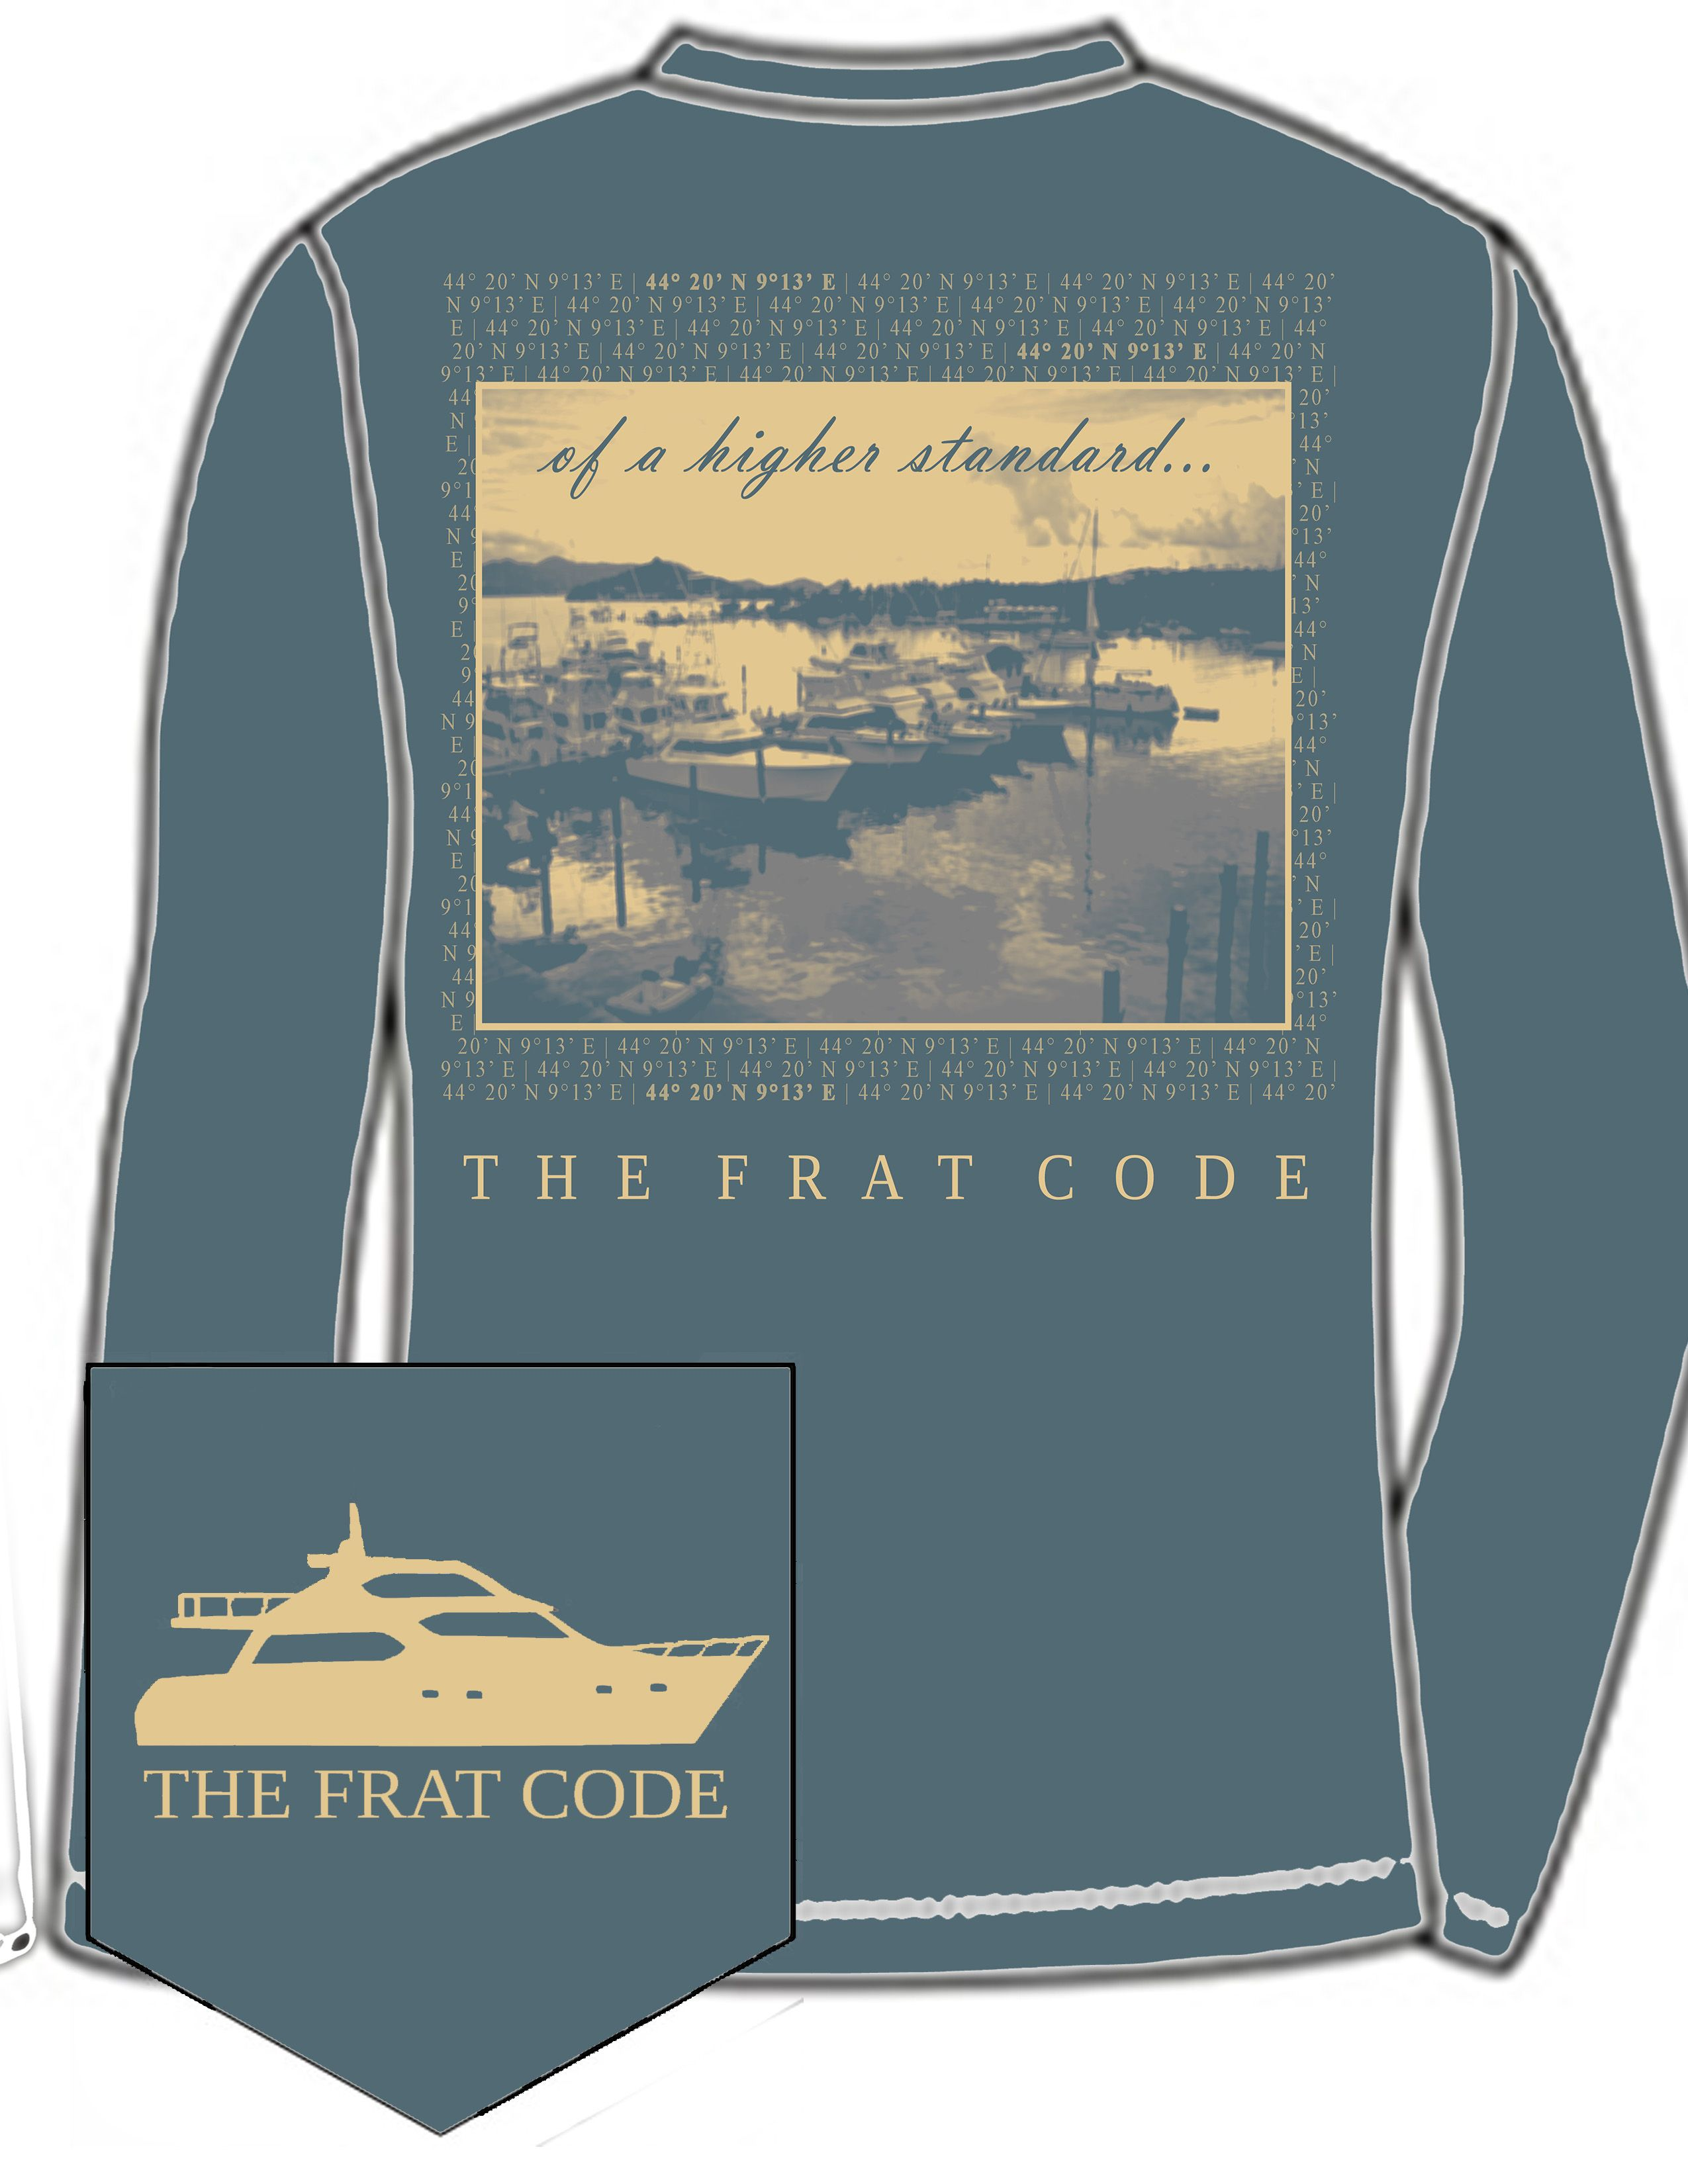 Of a higher standard..- The Frat Code  #TheFratCode